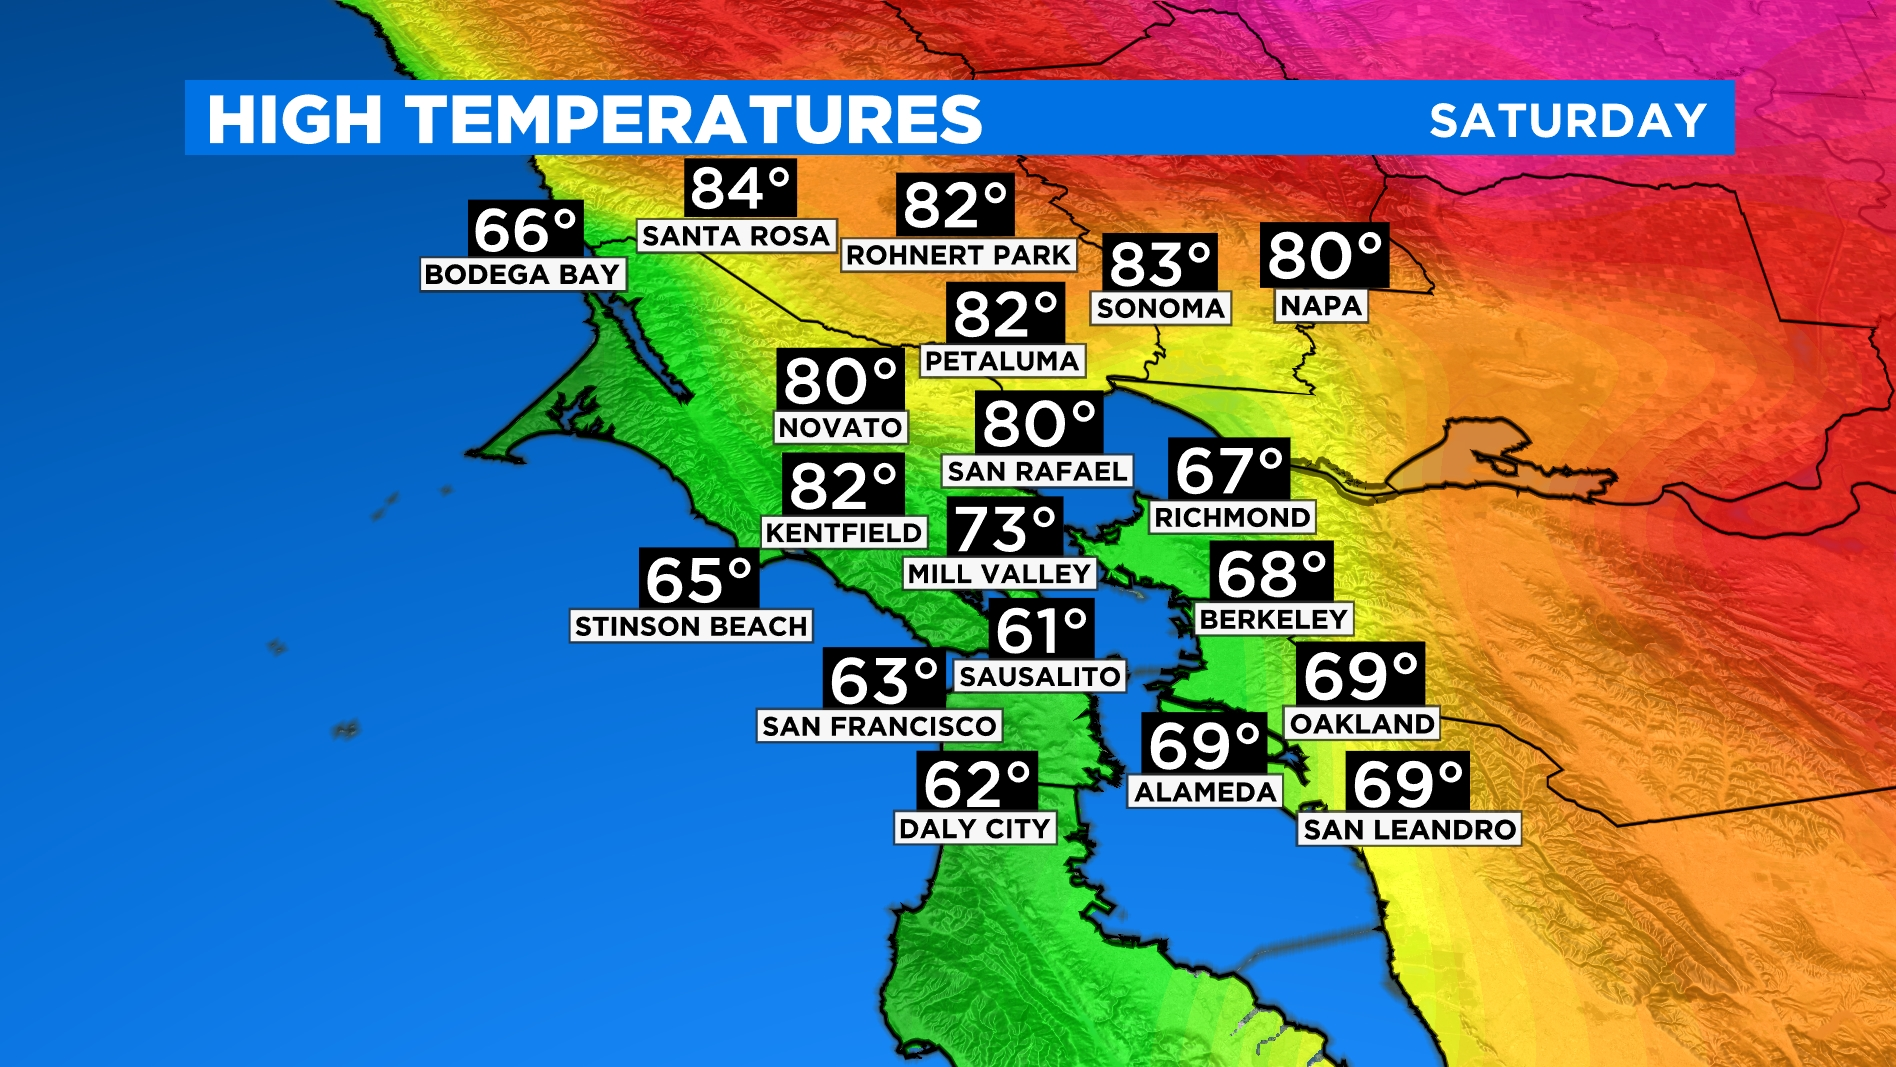 NORTH BAY HIGHS large North Bay Temp Forecast